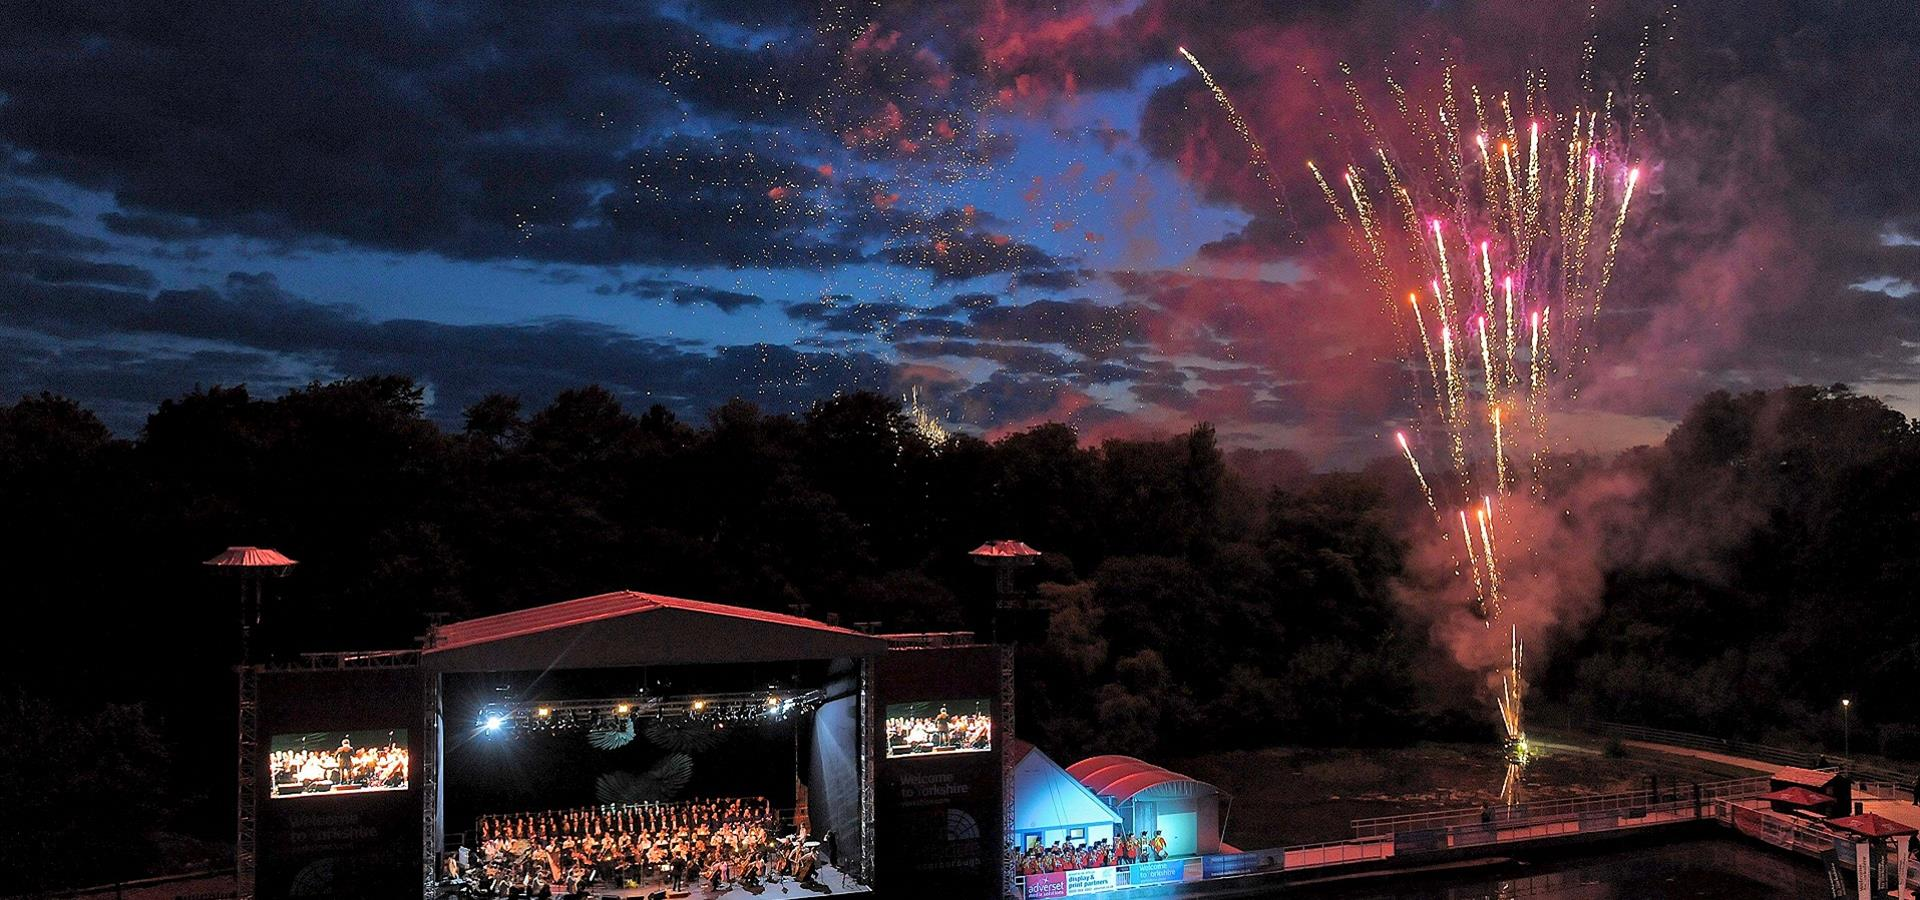 An image of Open Air Theatre, Scarborough